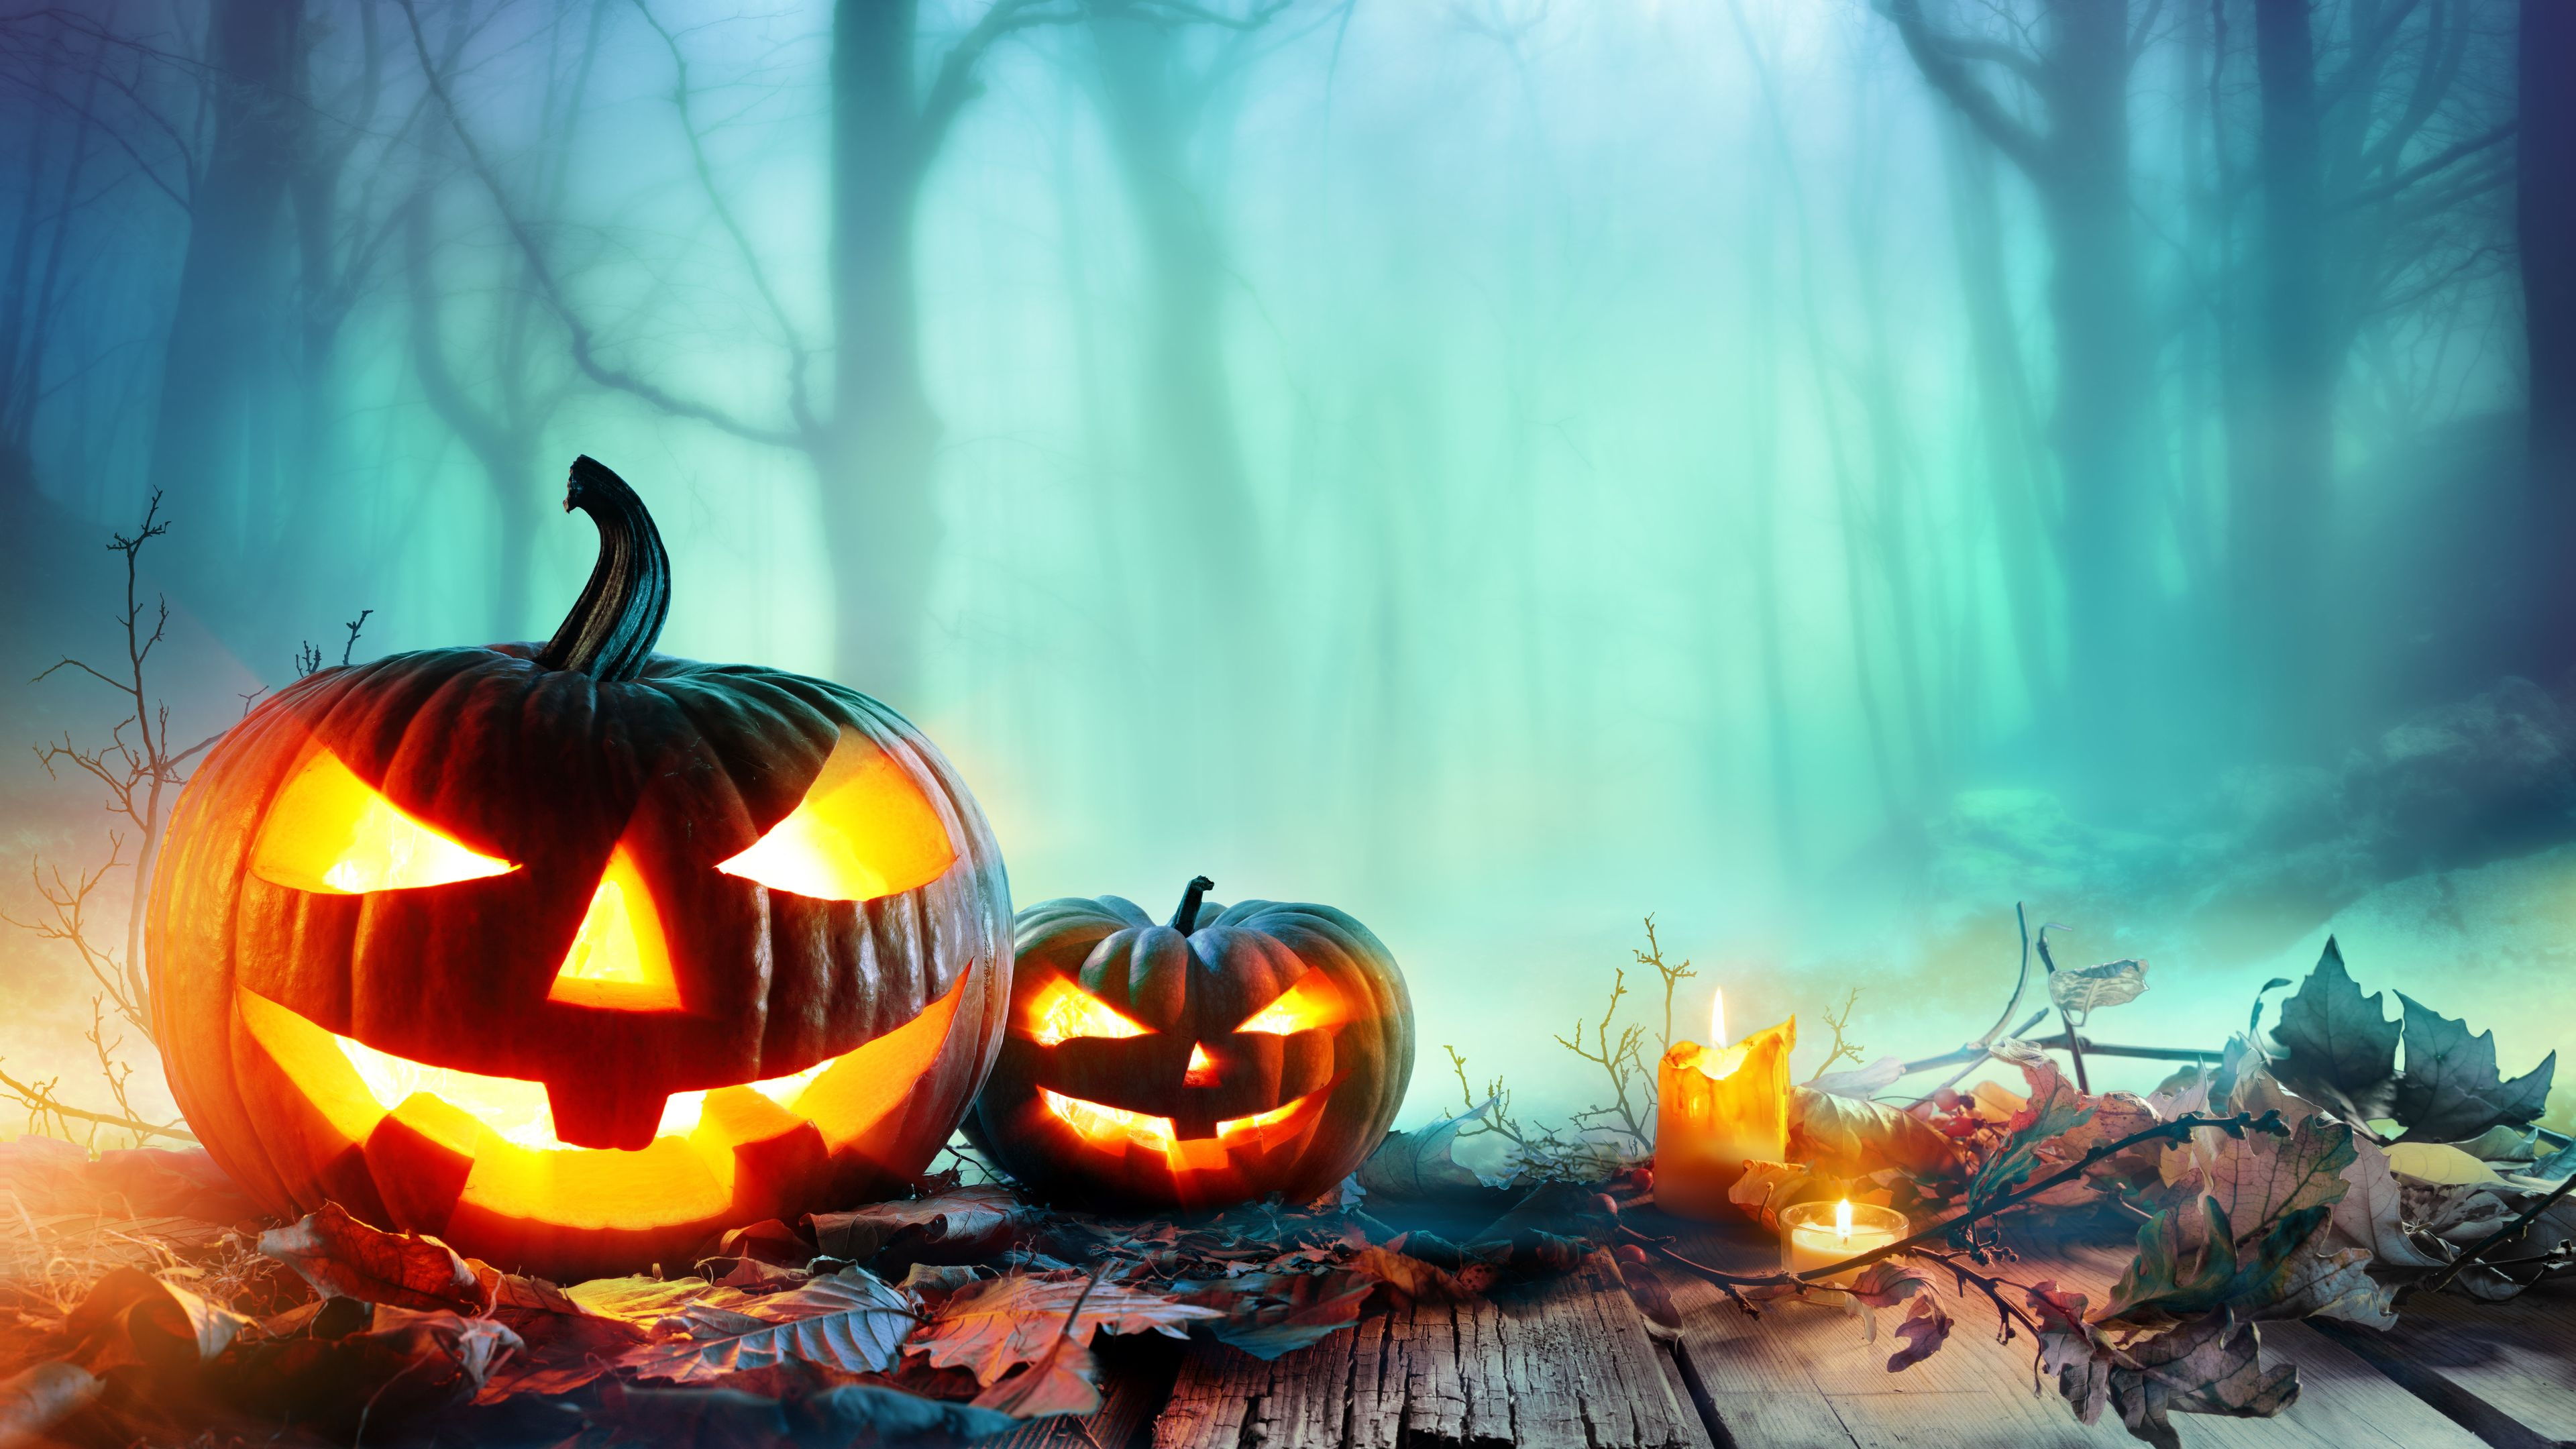 Halloween Pumpkin Wallpaper Hd.Wallpaper 4k 4k New Halloween 4k Wallpapers 5k Wallpapers